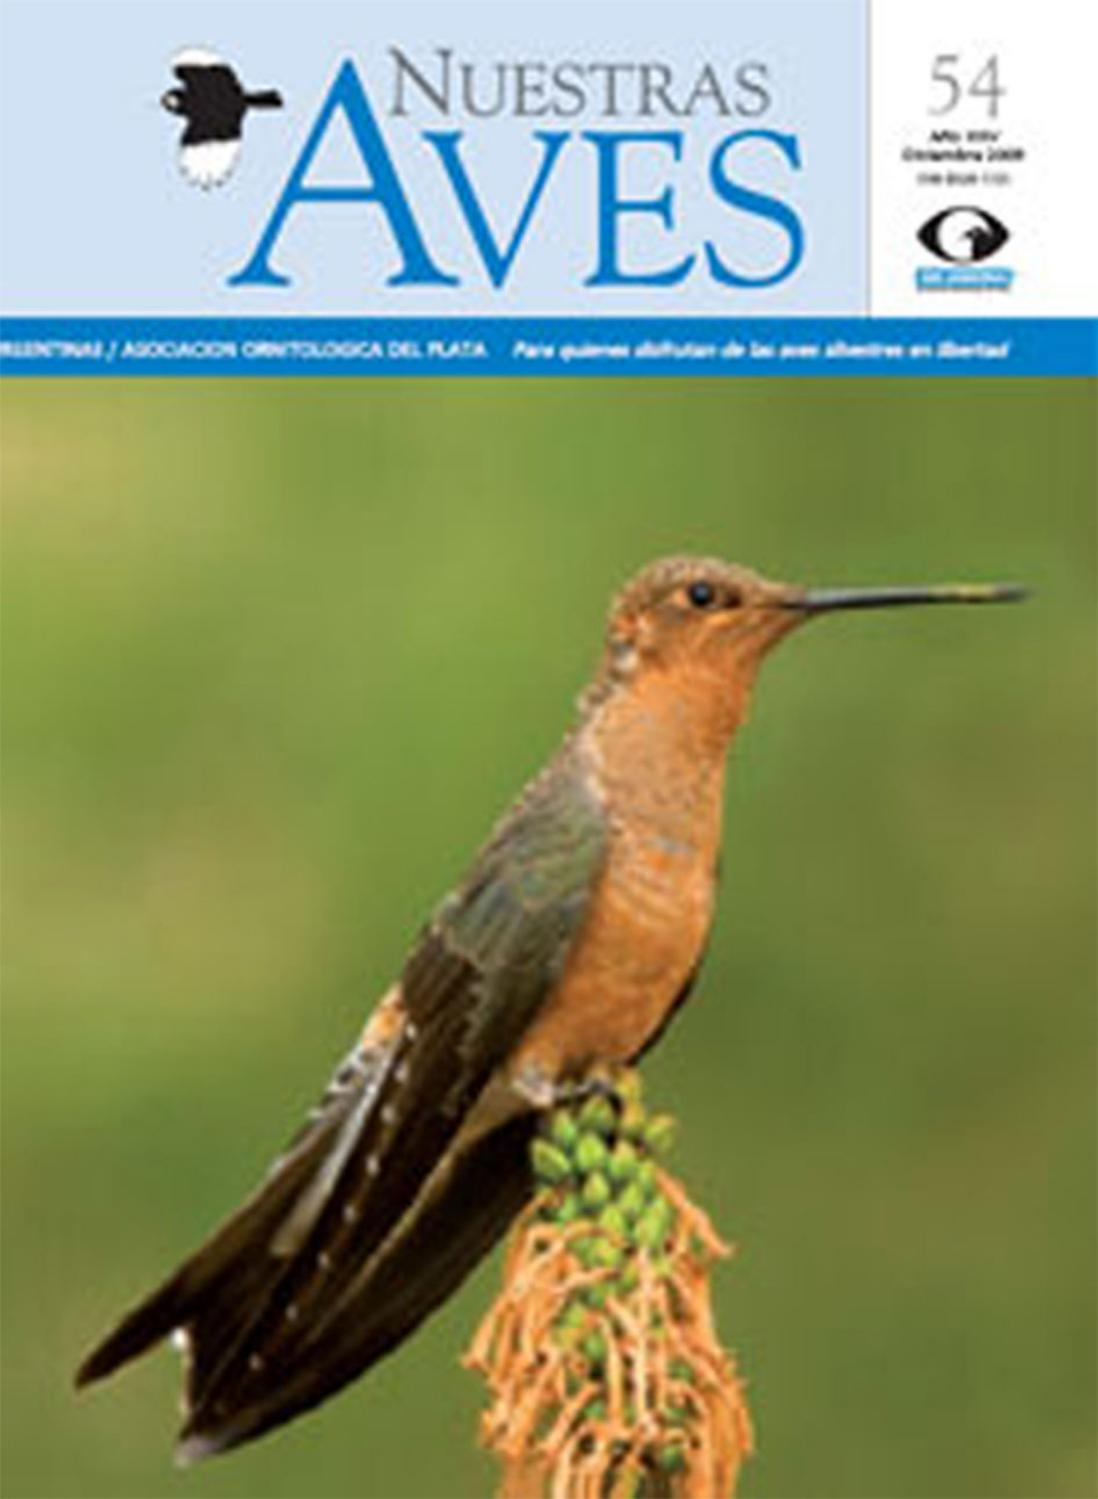 Revista nuestras aves n54 by Aves Argentinas - issuu